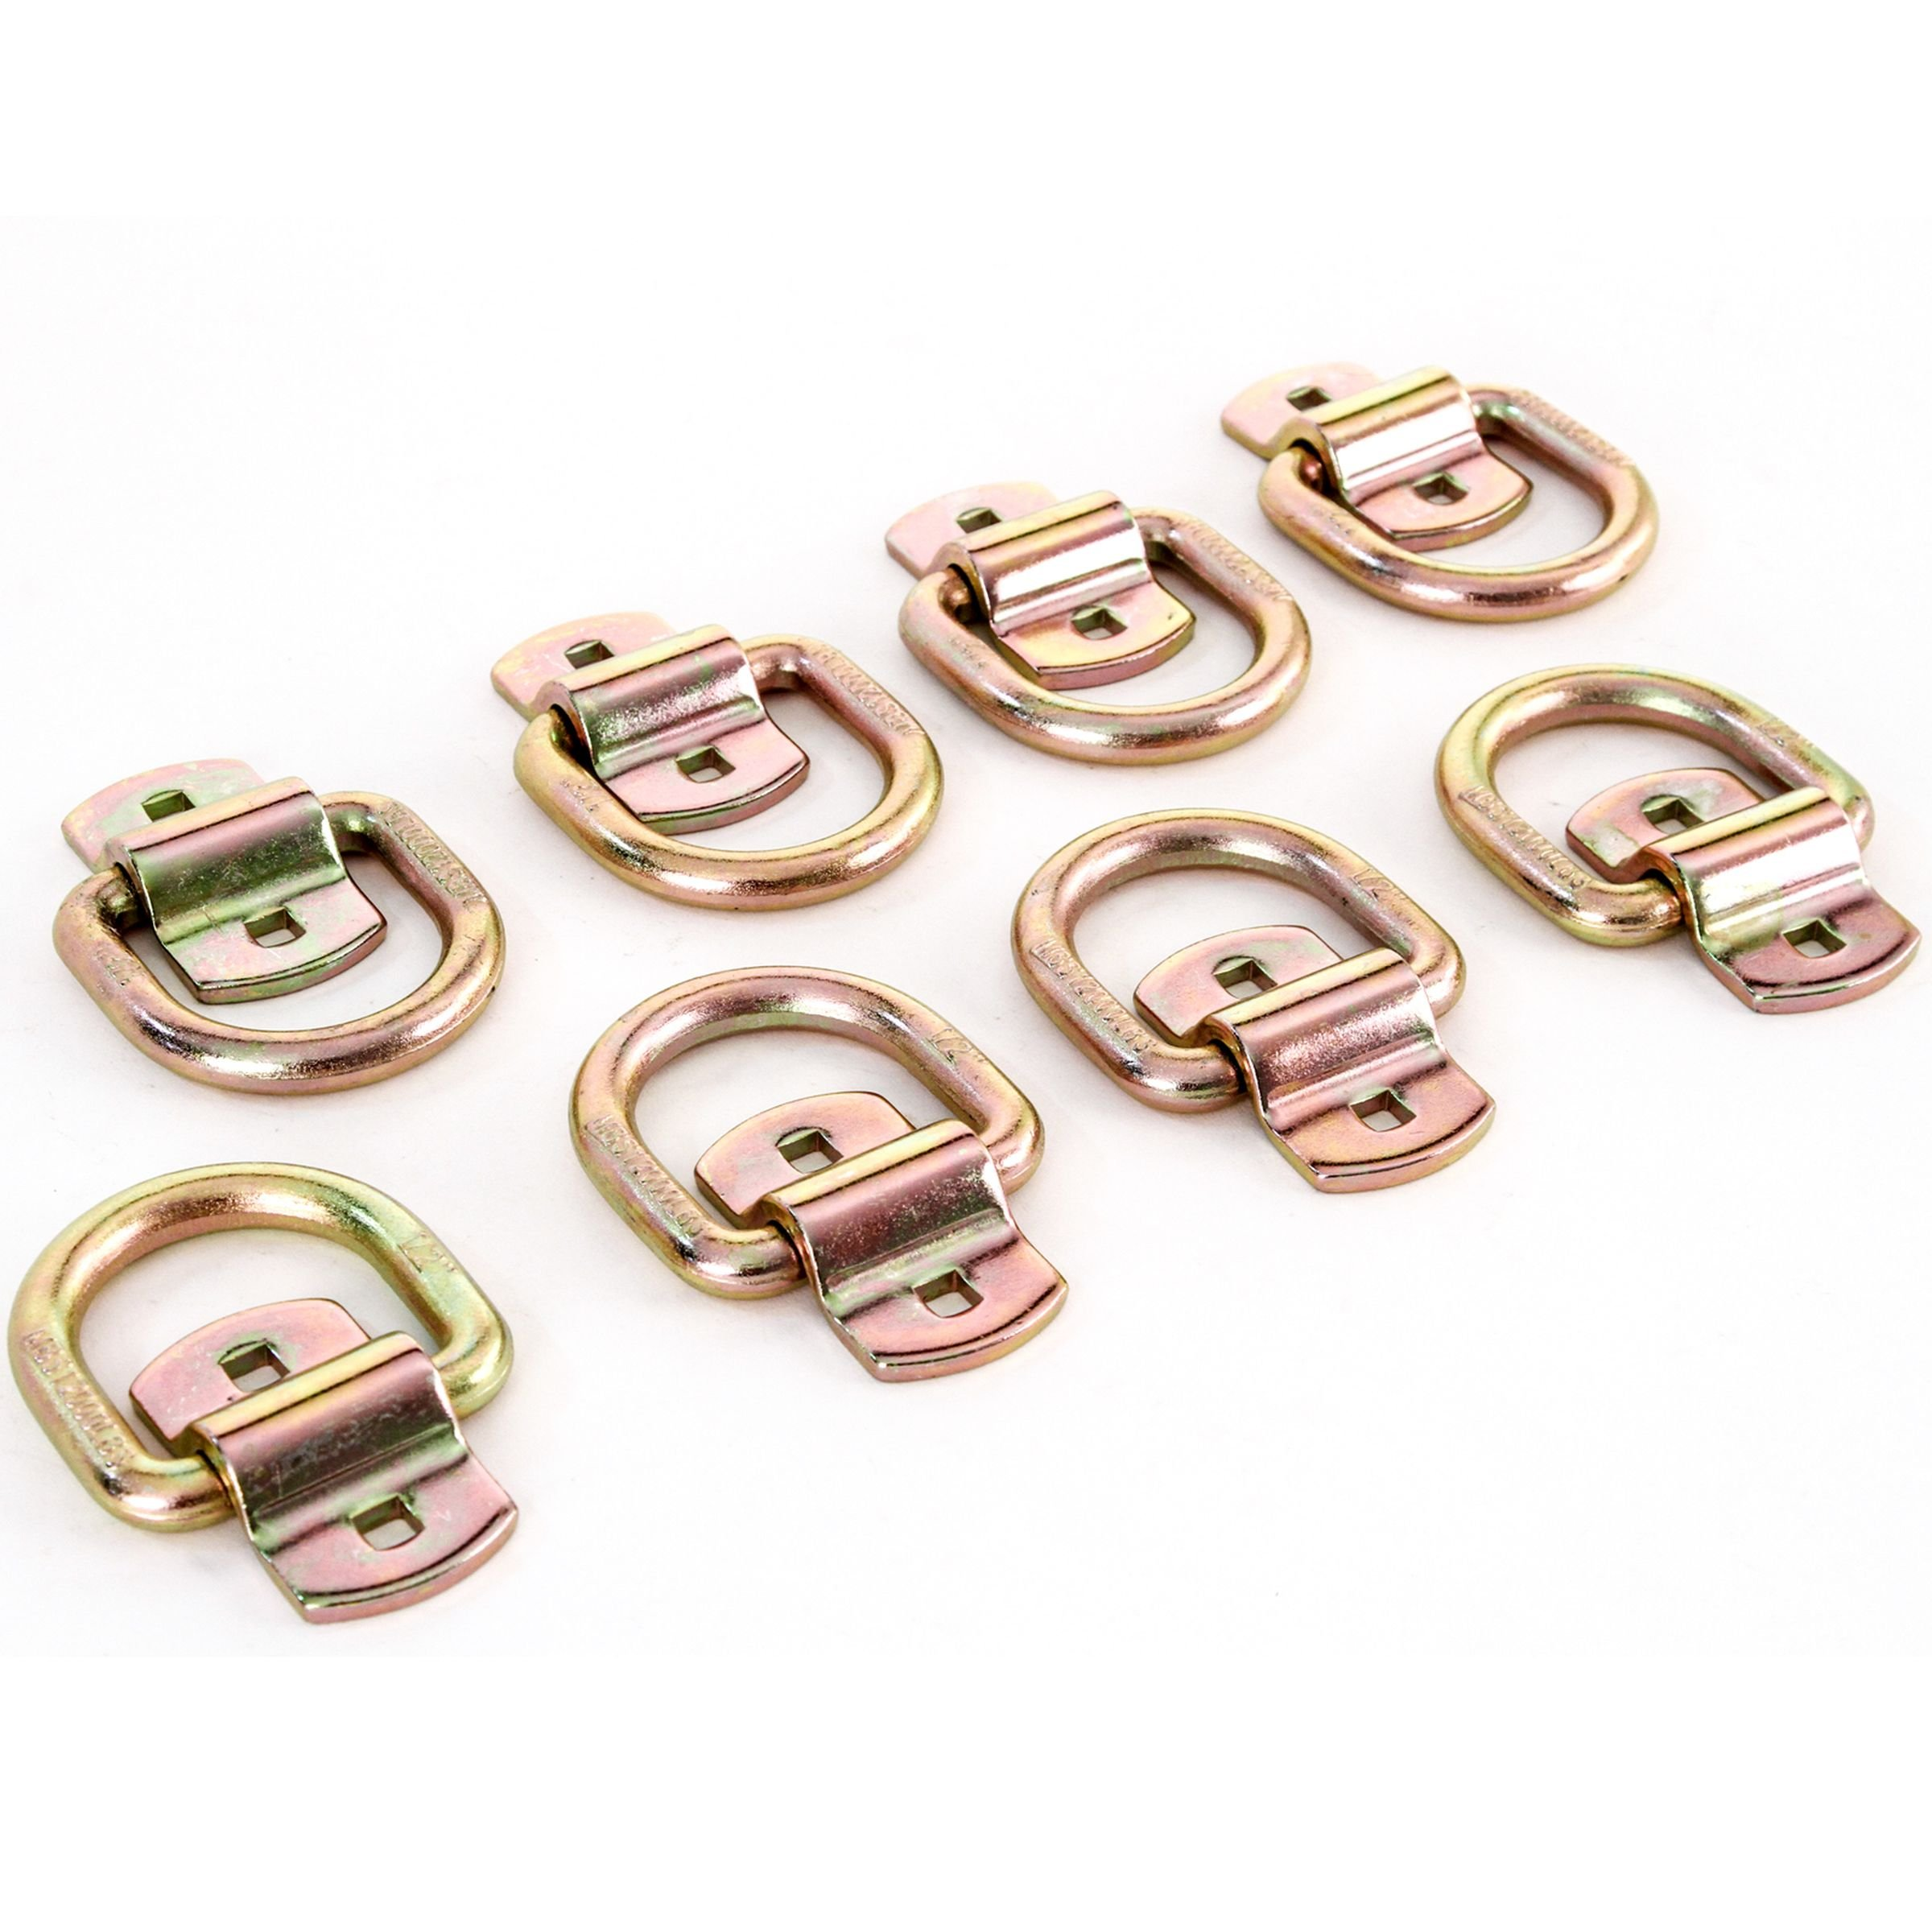 (8) 1/2'' Bolt or Weld-On D-Ring Flatbed Truck Trailer Cargo Strap Tie Down Rings